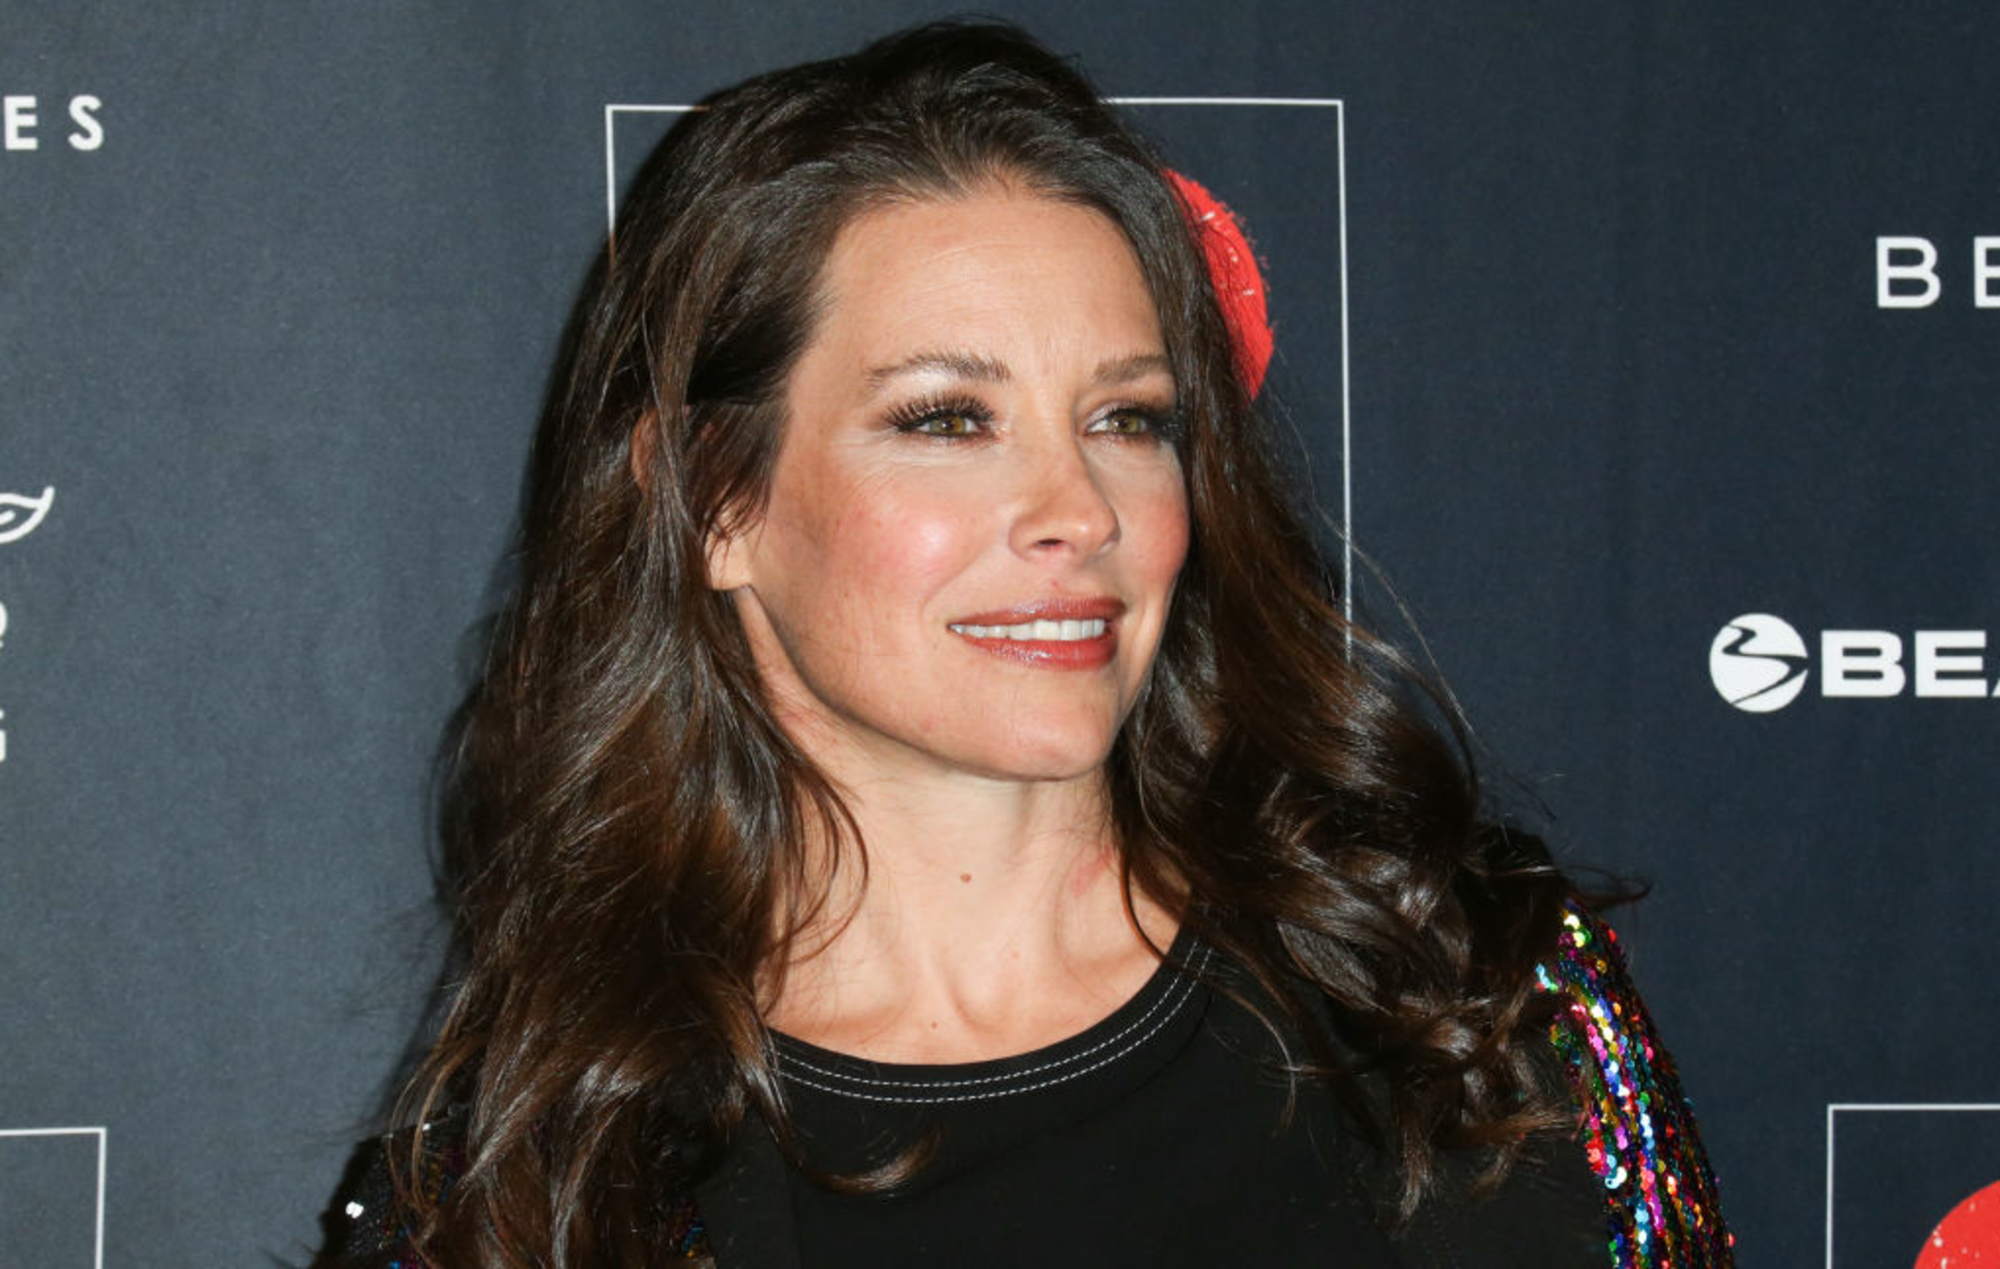 Evangeline Lilly apologises for insensitive coronavirus comments